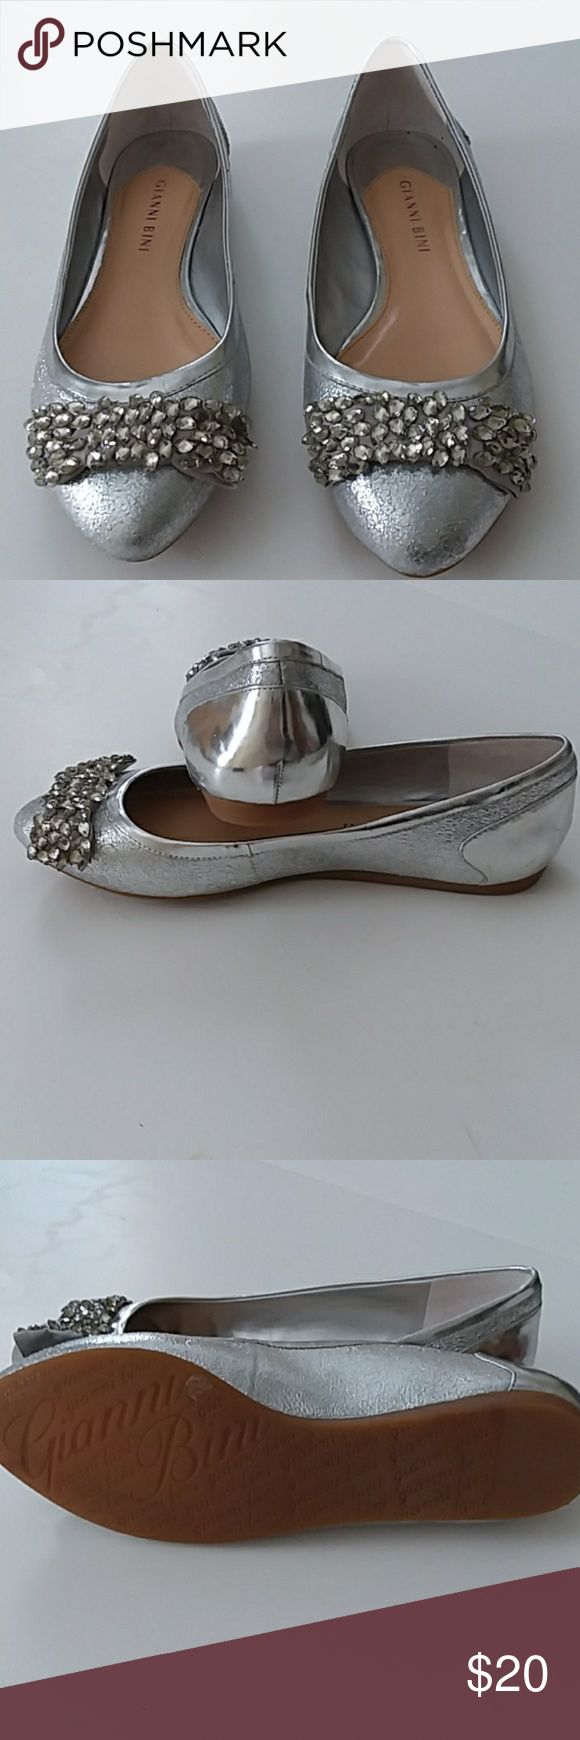 BE ON Gianni Bini silver bow flats Brand new silver flats with jewel bow embellishment.  Perfect for the holidays! Gianni Bini Shoes Flats & Loafers